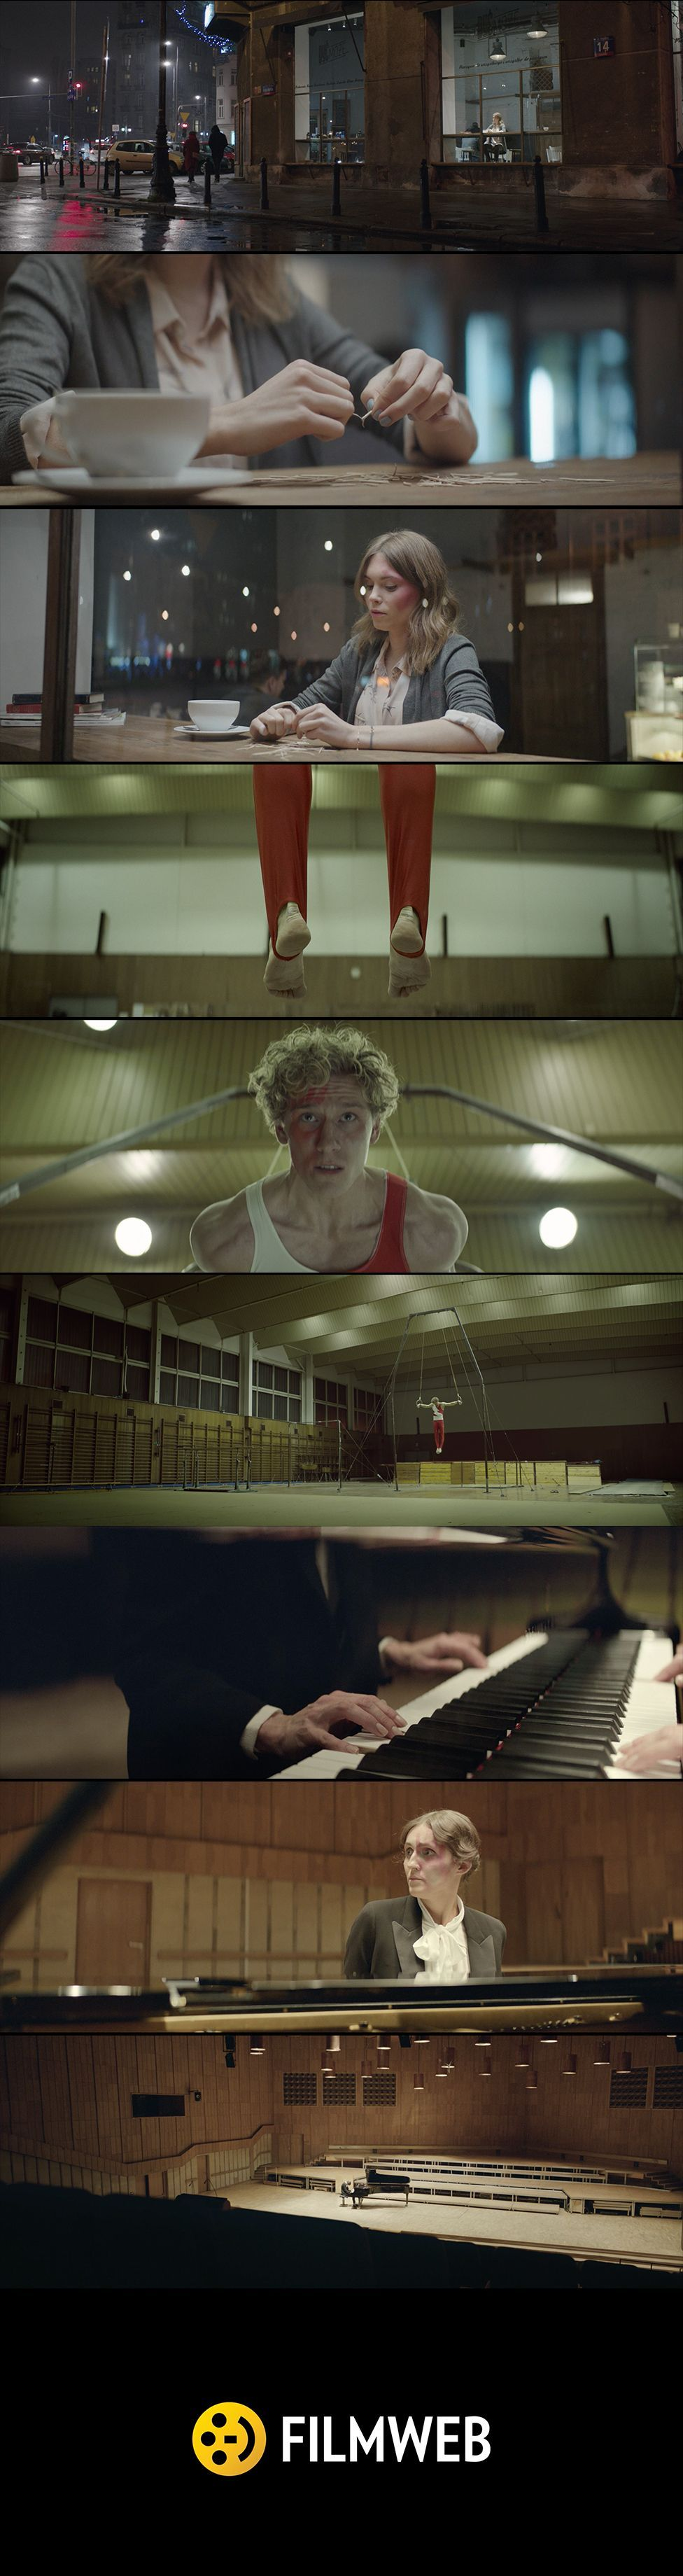 Screenshots from commercial for Filmweb. Directed by Marcin Dubiniec ...